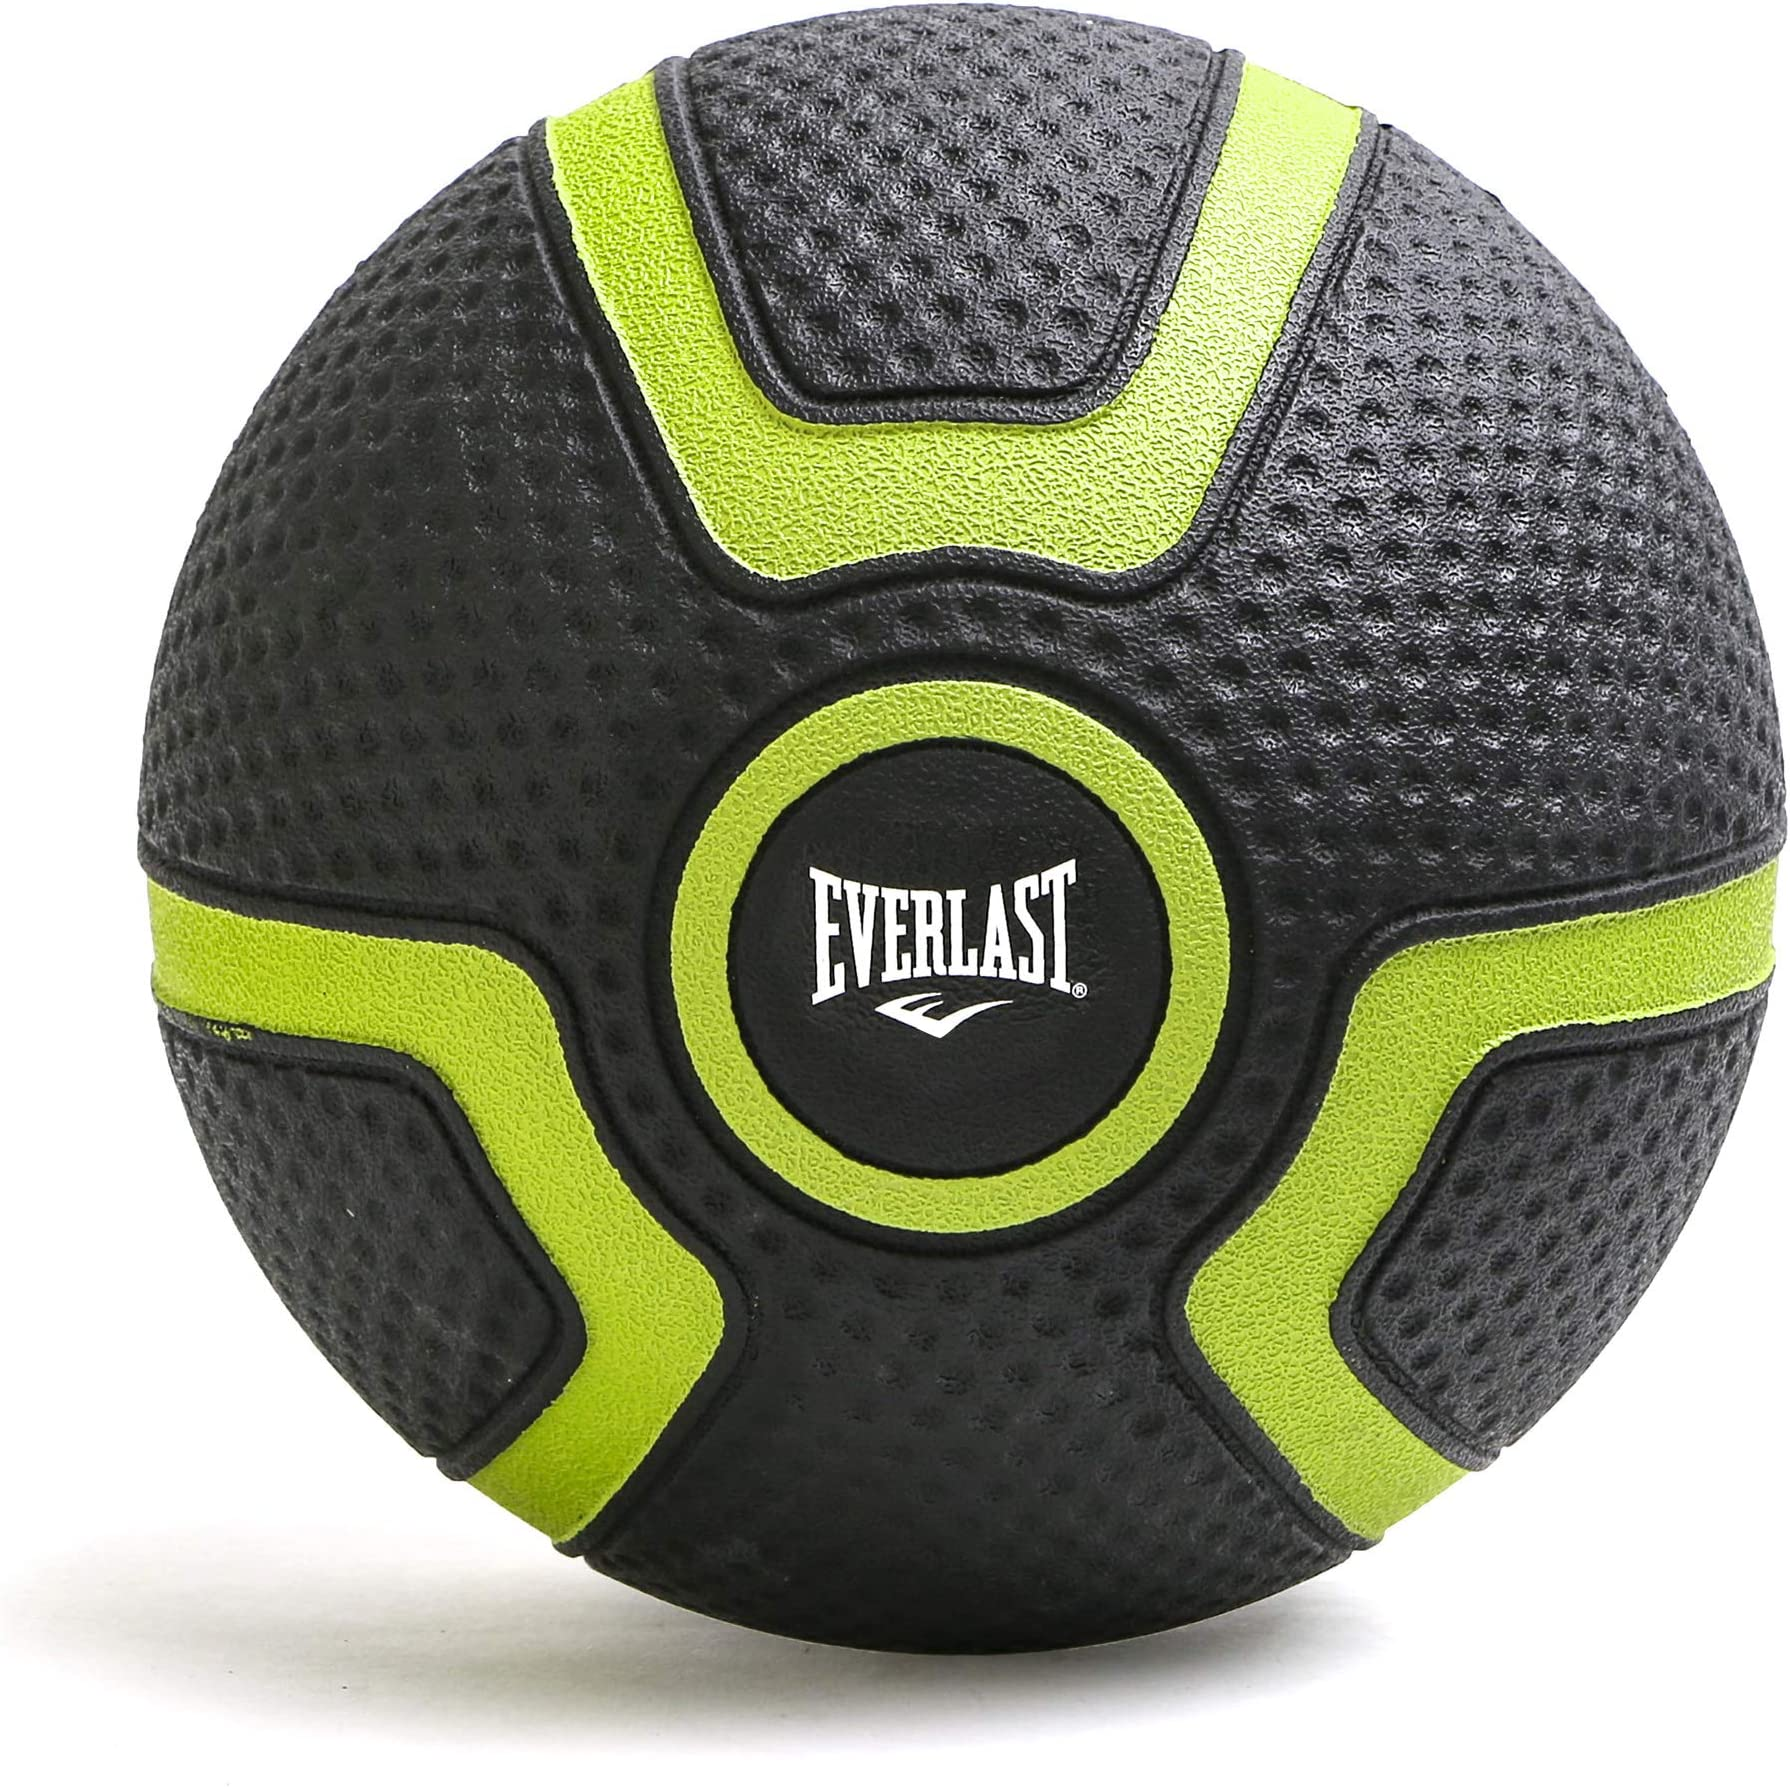 Everlast Medicine Ball Textured Grip – for Weighted Slam Ball Workout | Strength, Balance, Core Training | Wall Ball Exercise | Durable Non-Slip Rubber (P00001794)